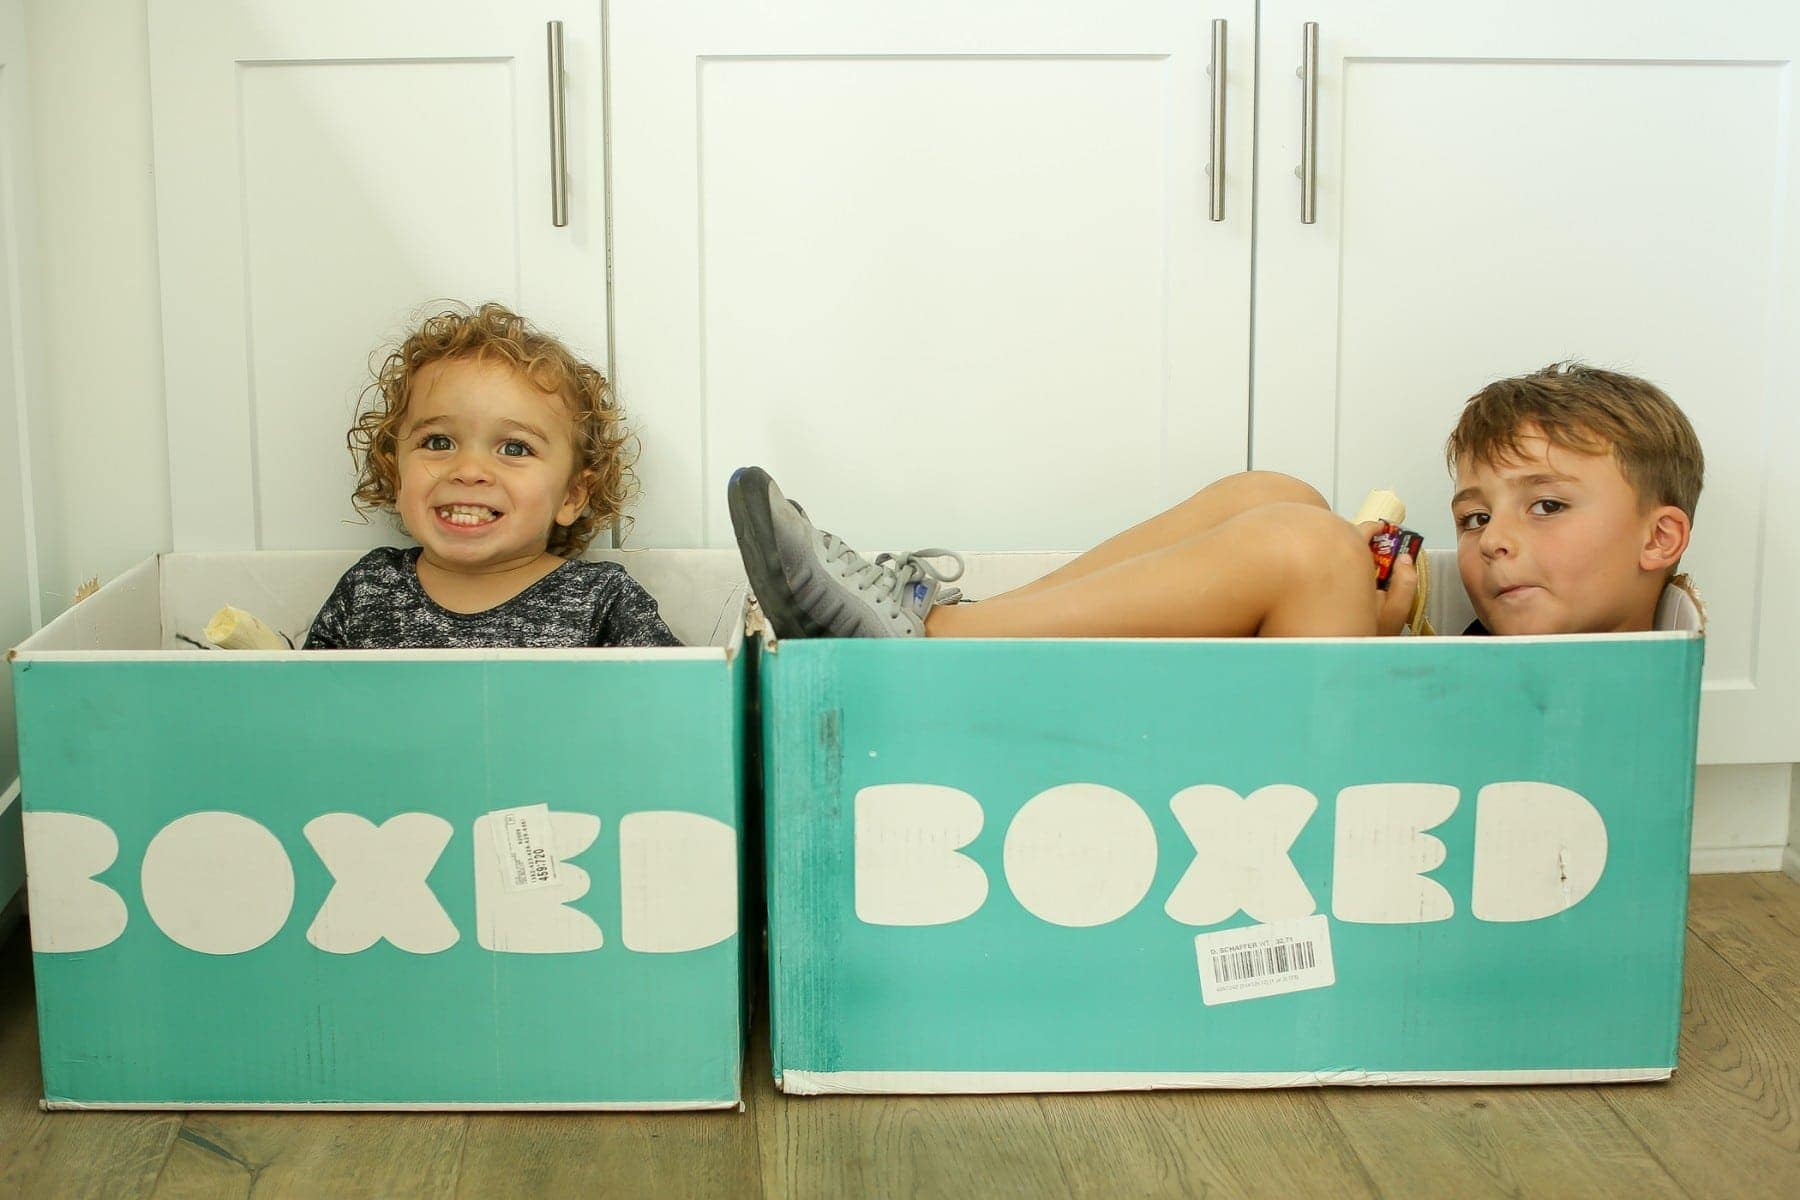 Boxed brothers